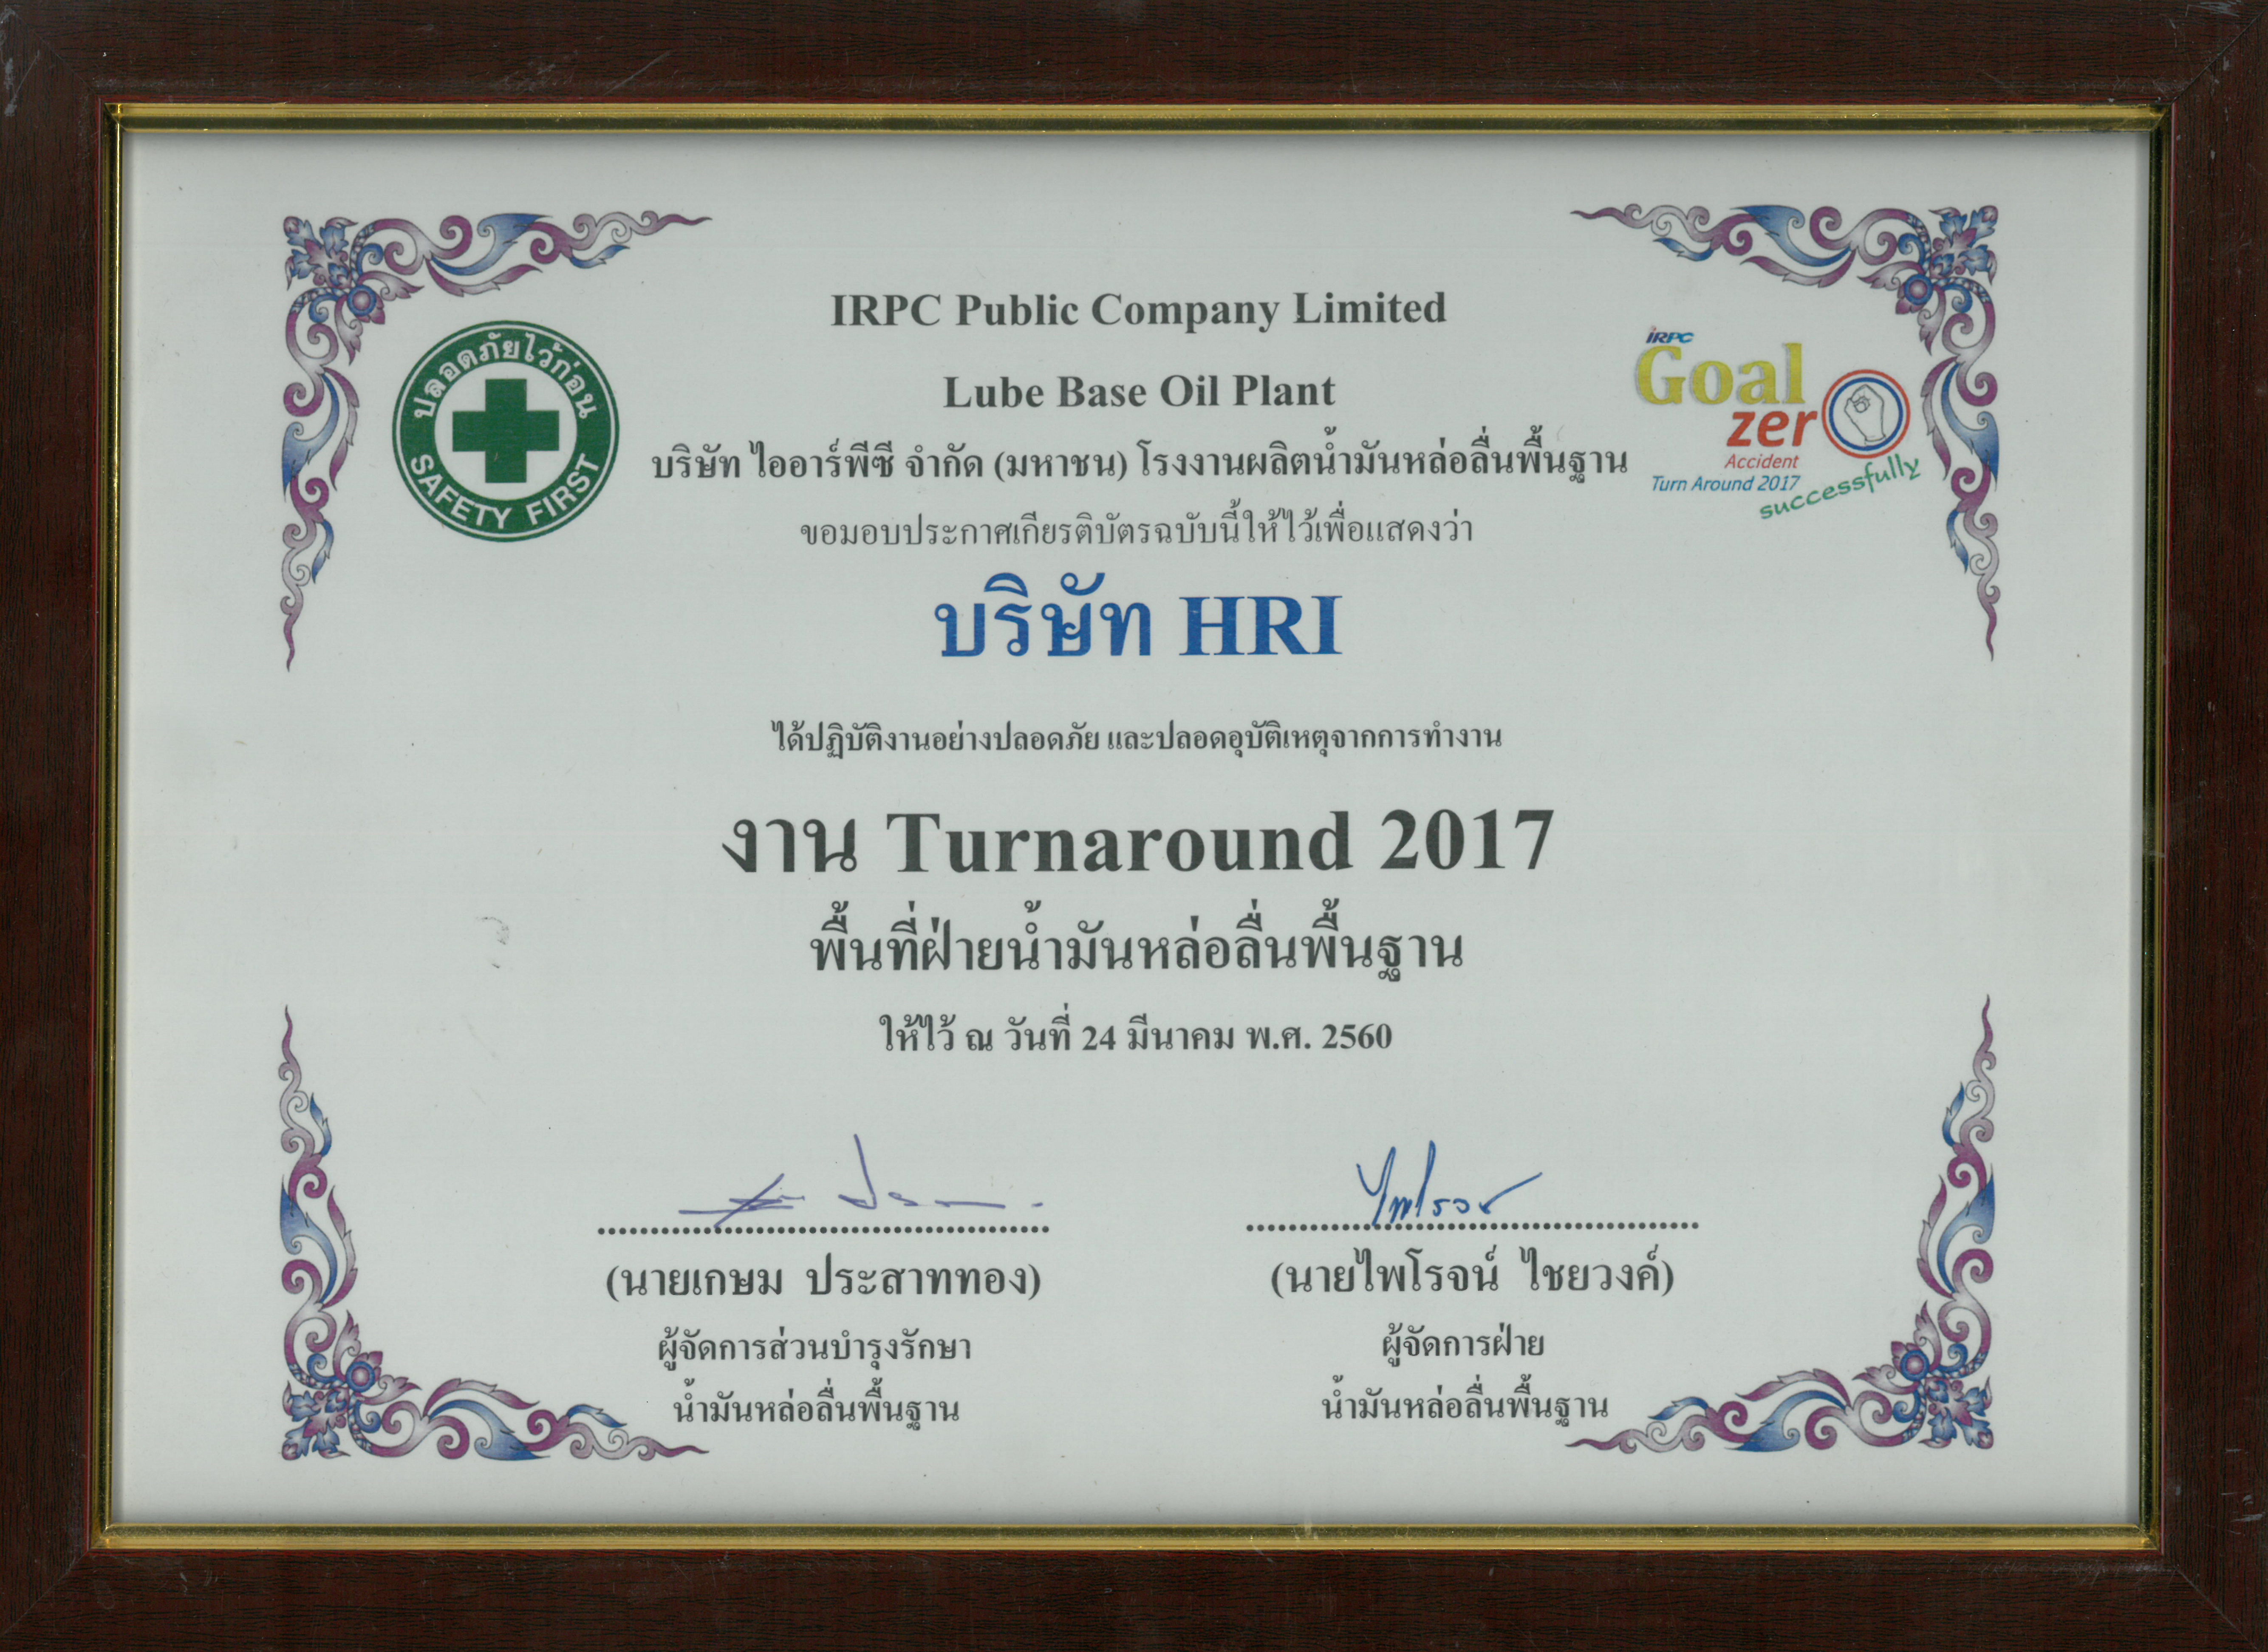 Awards IRPC Lube Base Oil Plant